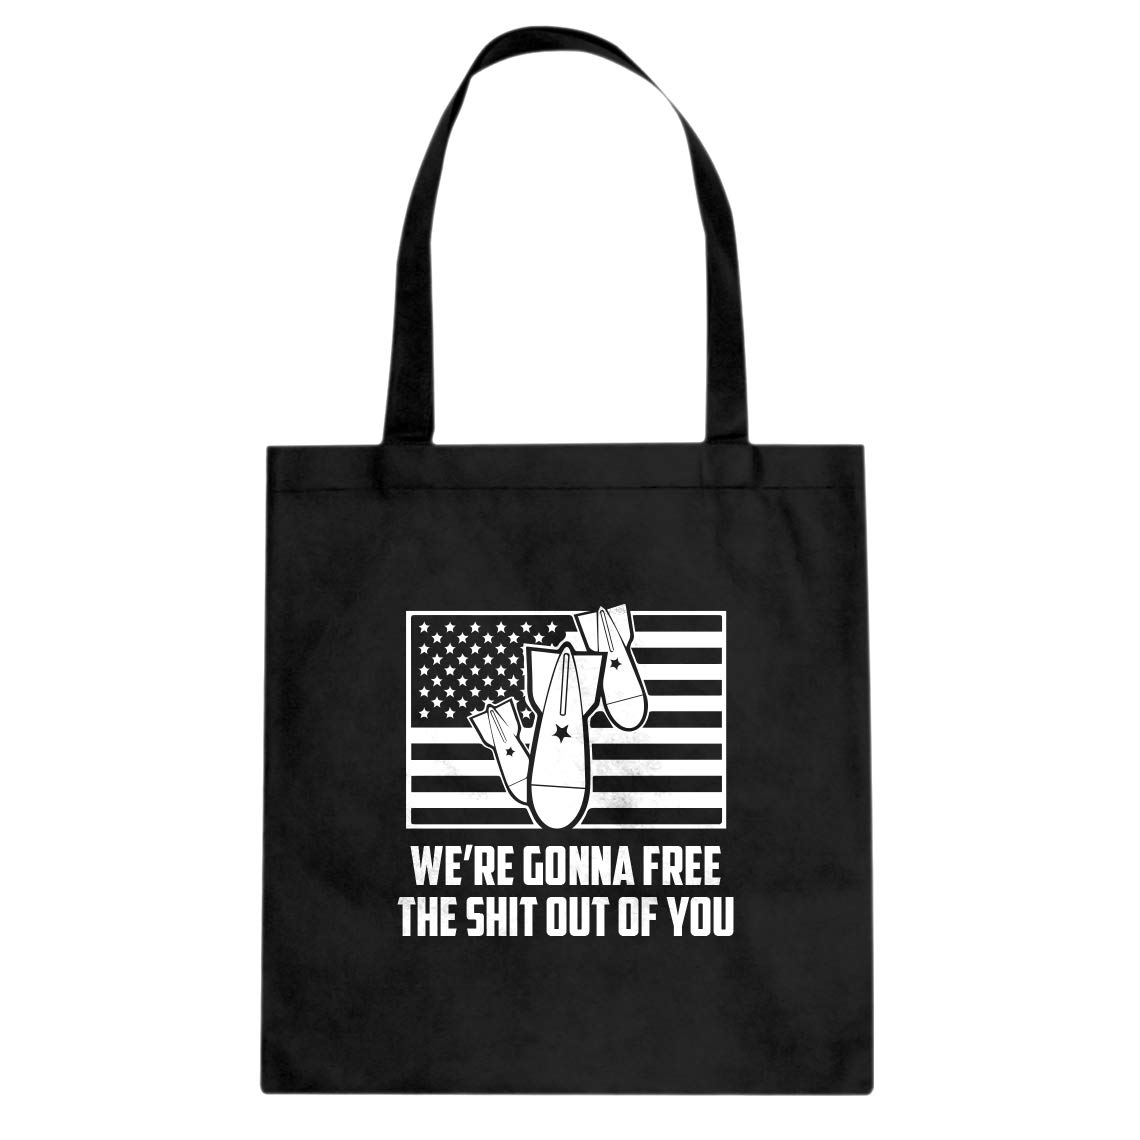 Indica Plateau Were Gonna Free the Shit Out of You Cotton Canvas Tote Bag